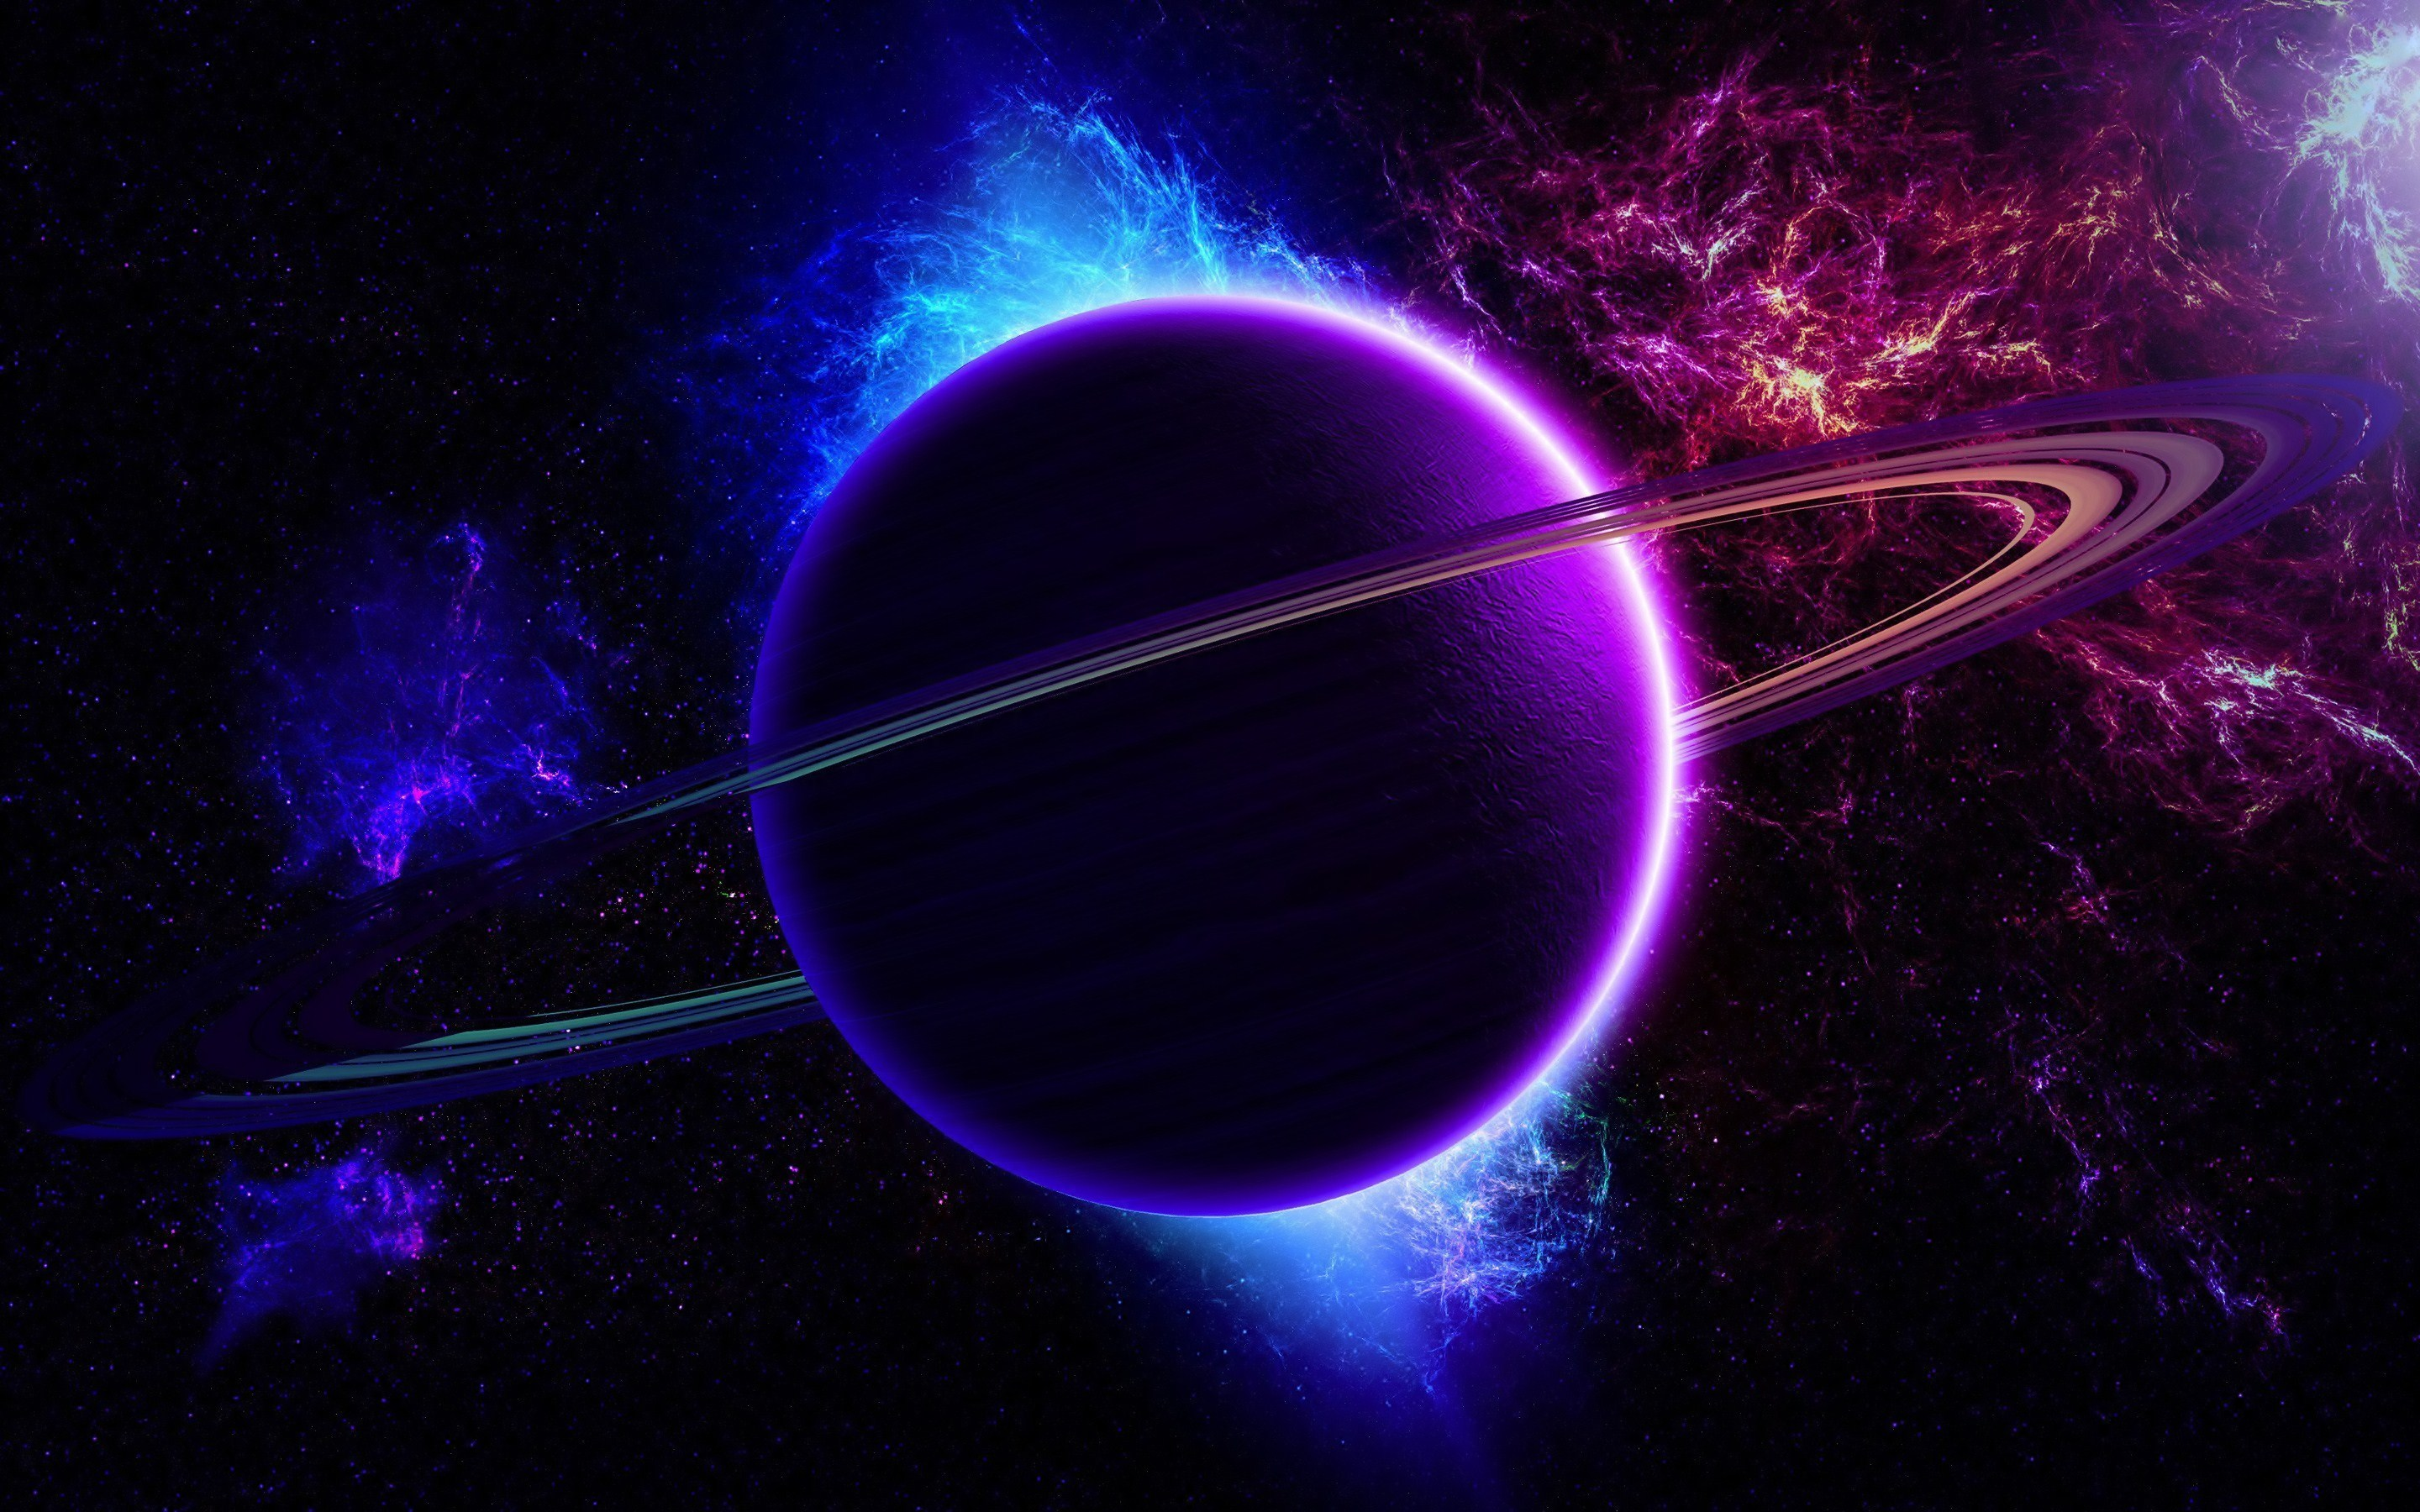 2880x1800 - Planetary Ring Wallpapers 7